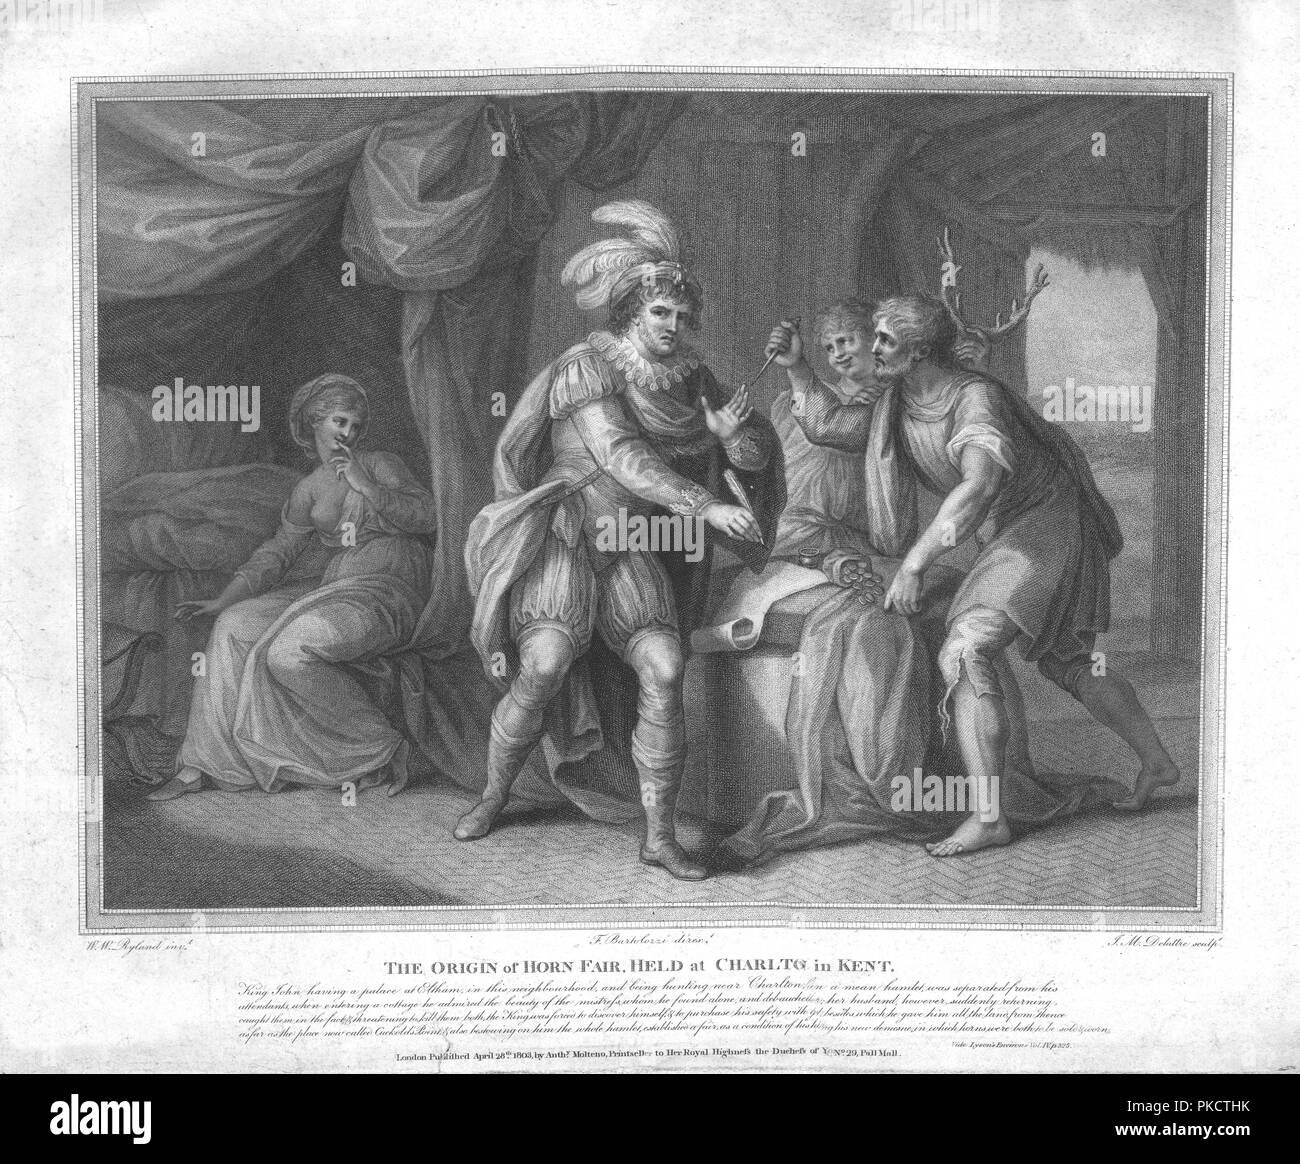 'The Origin of Horn Fair, Held at Charlton in Kent', (c1803). Late 18th century depiction of a supposed incident involving King John of England, (1166-1216) who has been caught having committed adultery with the wife of a miller (brandishing knife on right), while a boy holds up a pair of antlers behind his head. (The symbol associated with cuckolding was a pair of horns). In the story, the King buys his life by drawing up a deed for a gift of land, on condition that a fair is held there every year, at which horns are to be worn. - Stock Image